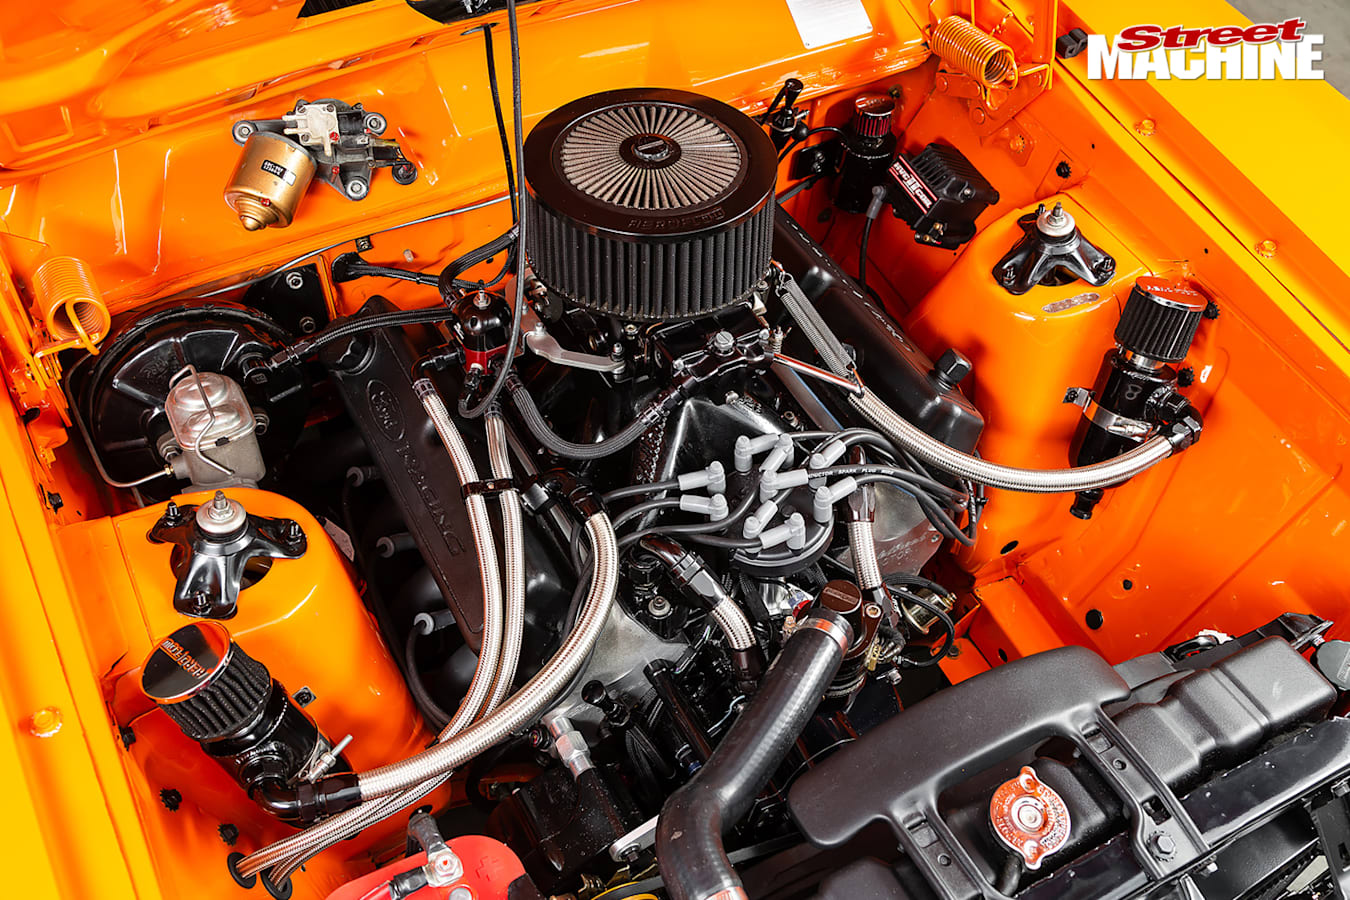 Street Machine Features Ford Falcon Engine Bay 2